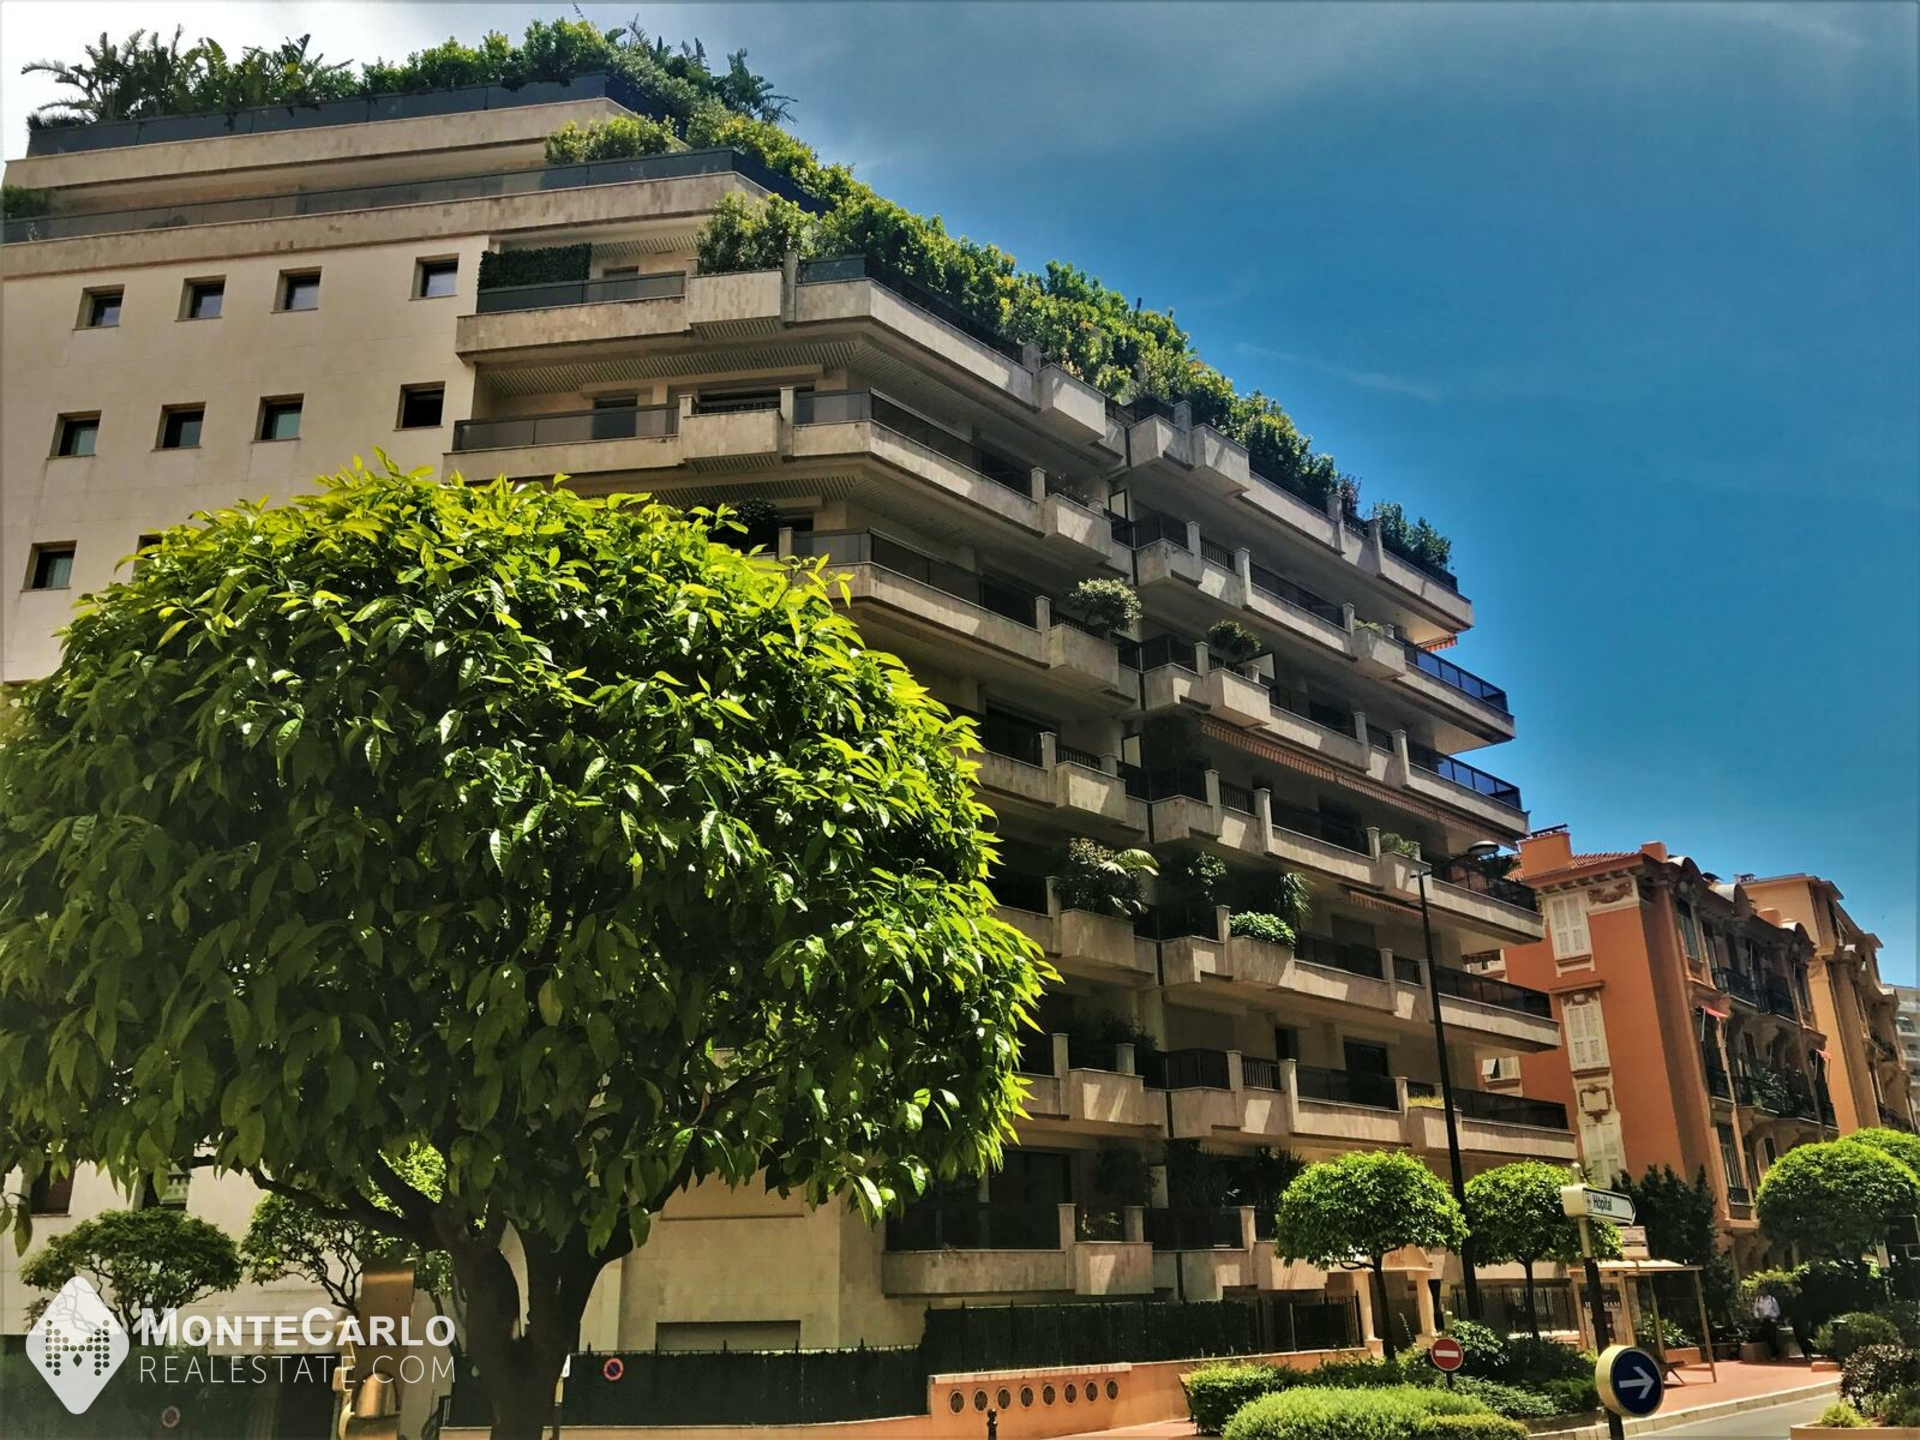 Rental Beverly Palace bloc A - Apartment / Studio : 2 500 € | Monte-Carlo Real Estate [IS-OldsBP]